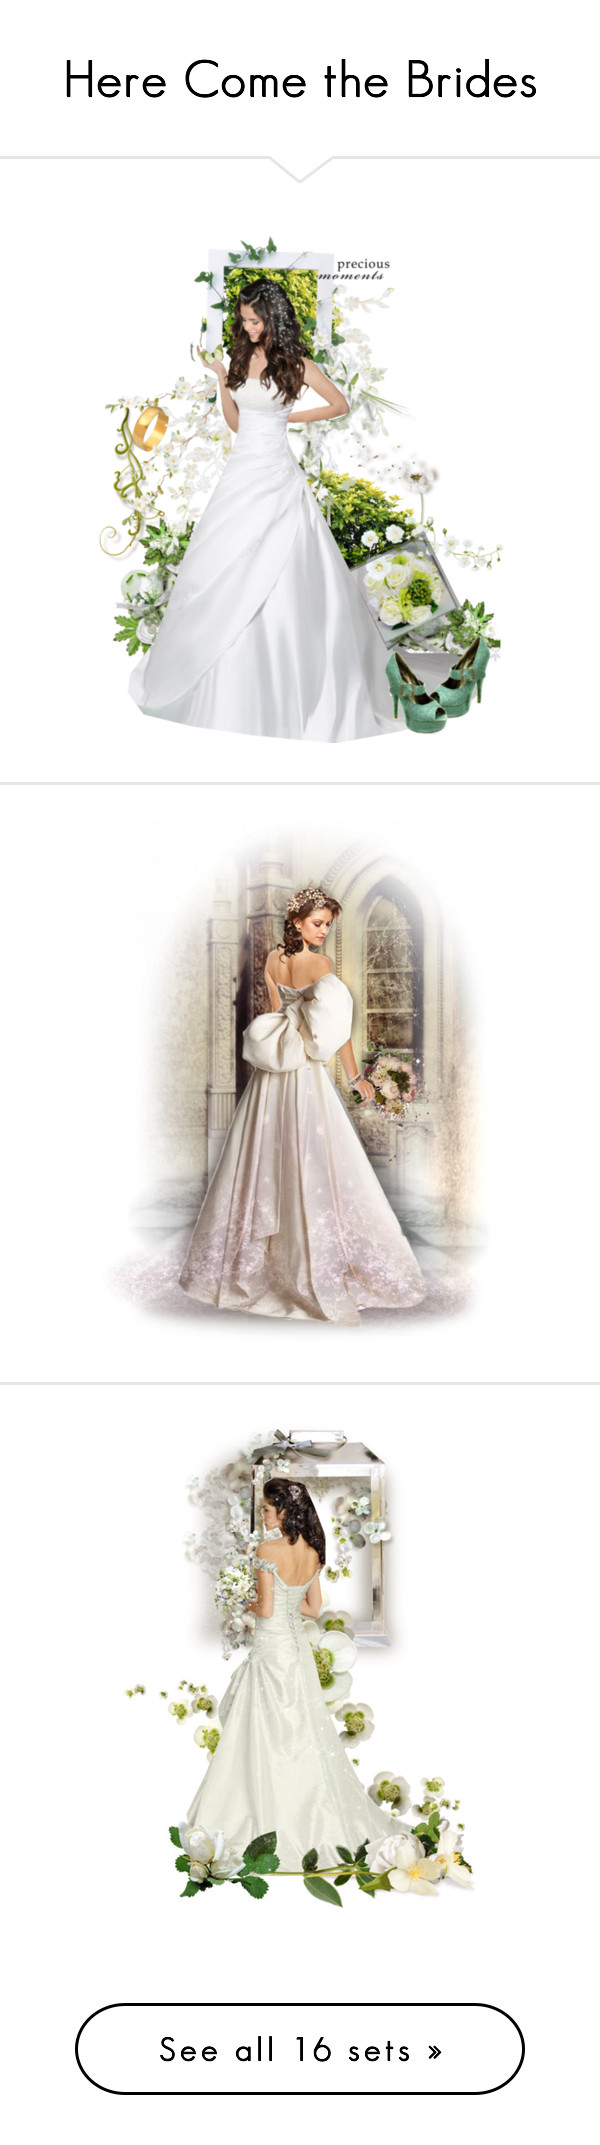 """""""Here Come the Brides"""" by kitty-t ❤ liked on Polyvore featuring arte, doll, dolls, dollcommunity, quiltel, wedding, moda, Unique Vintage, Original y bride"""